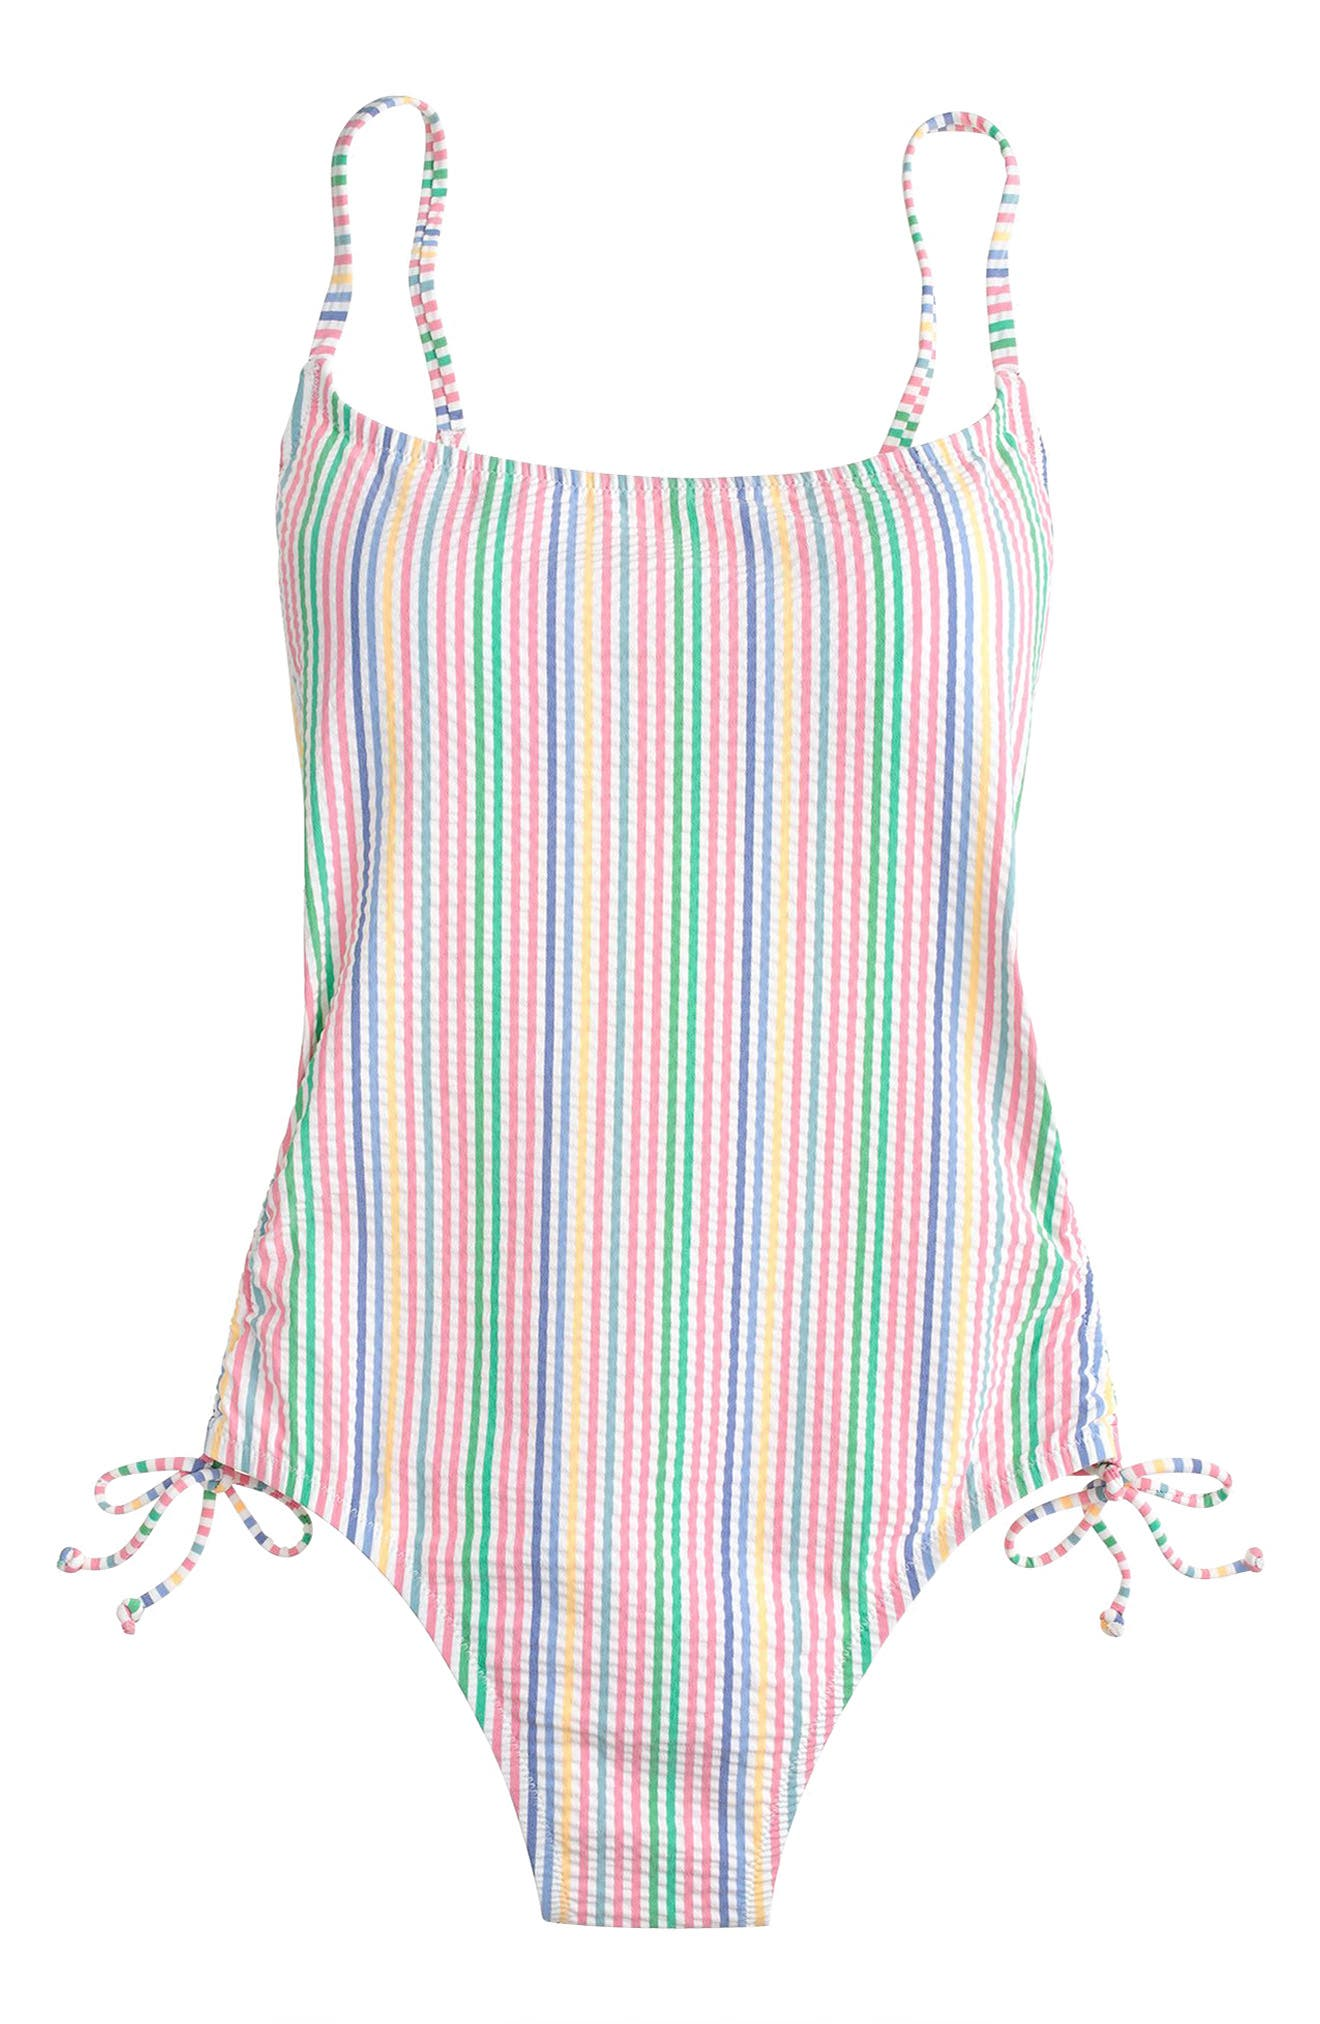 Ruched Seersucker One-Piece Swimsuit,                             Alternate thumbnail 4, color,                             400